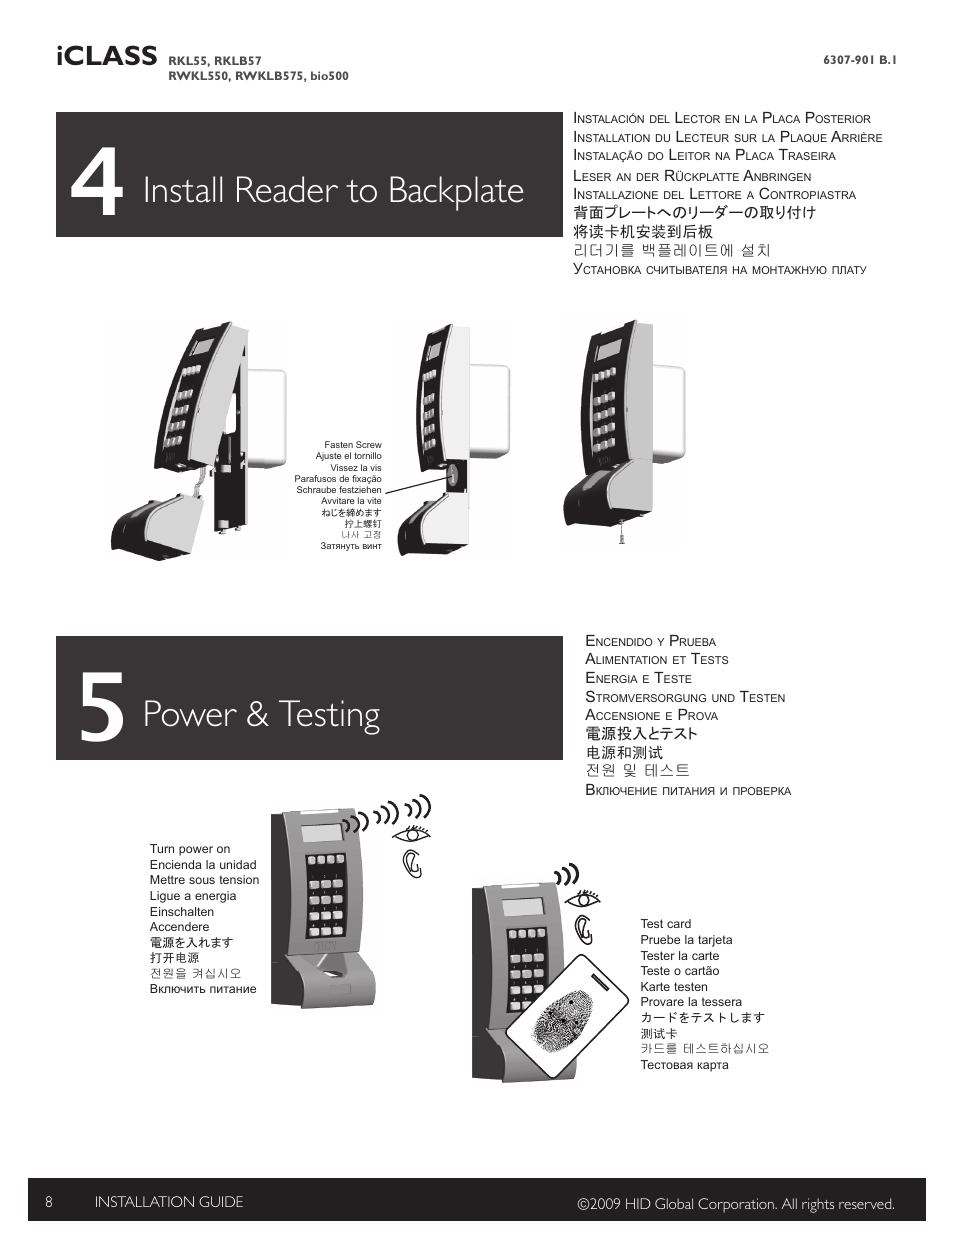 4 install reader to backplate, 5 power & testing, Power